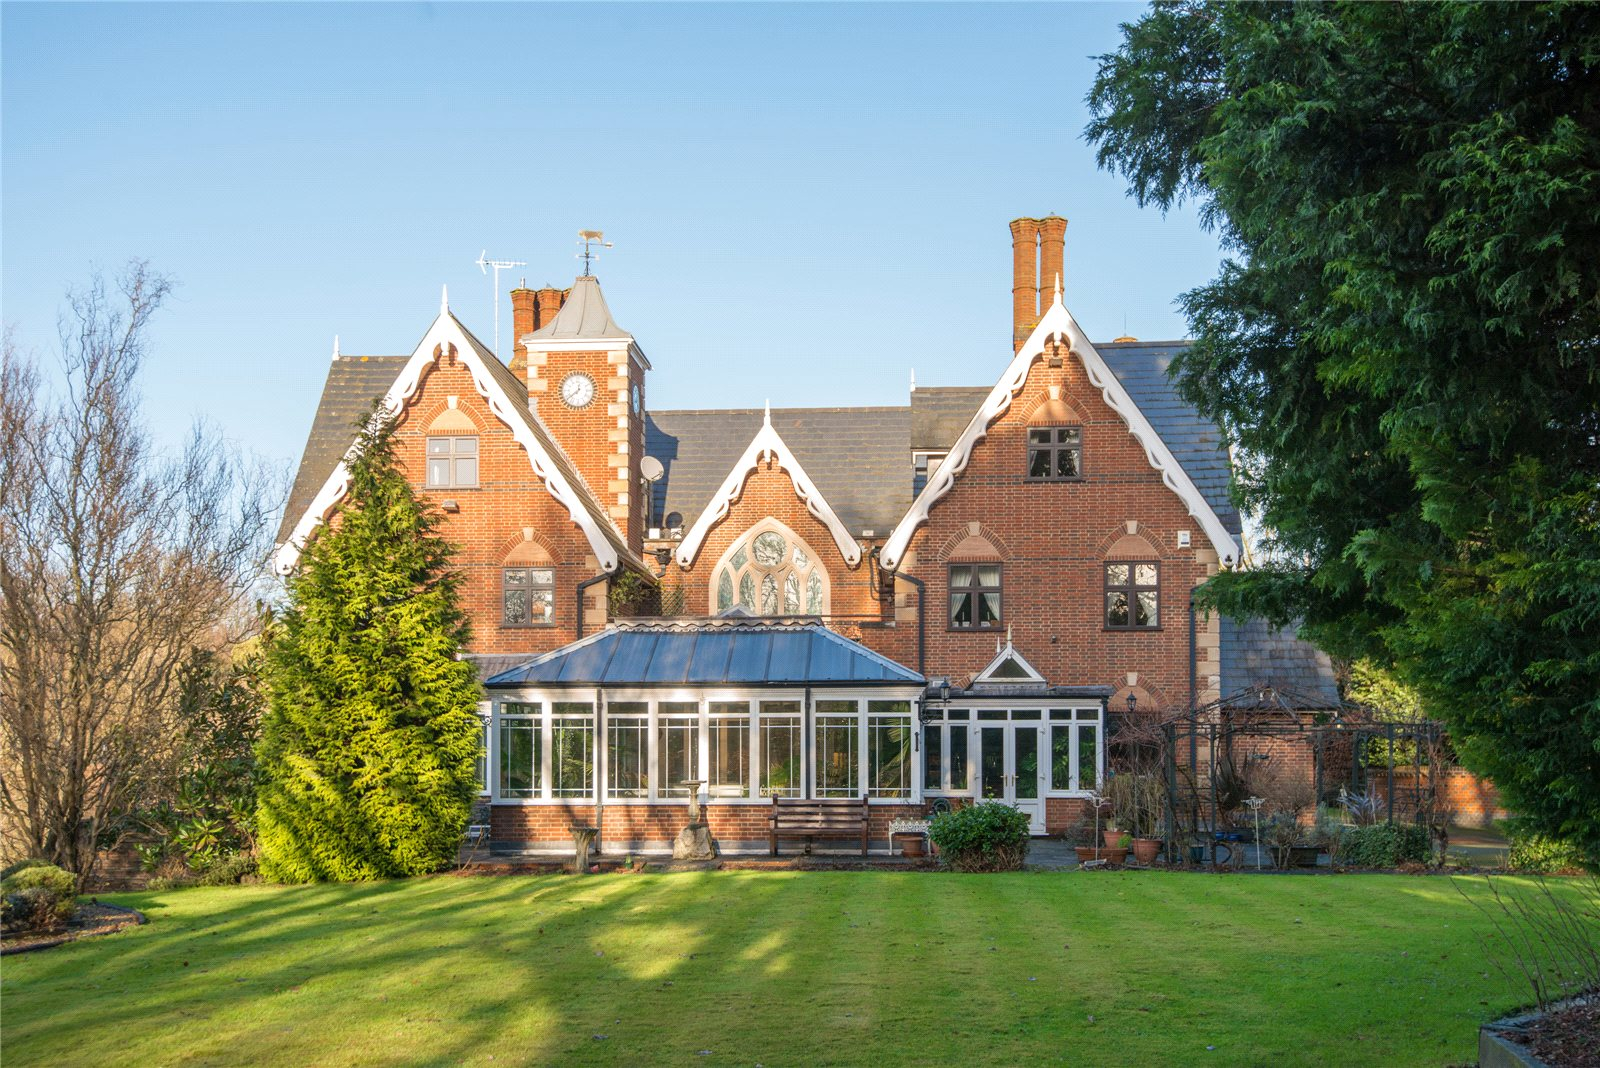 一戸建て のために 売買 アット Main Drive, Gerrards Cross, Buckinghamshire, SL9 Gerrards Cross, イギリス